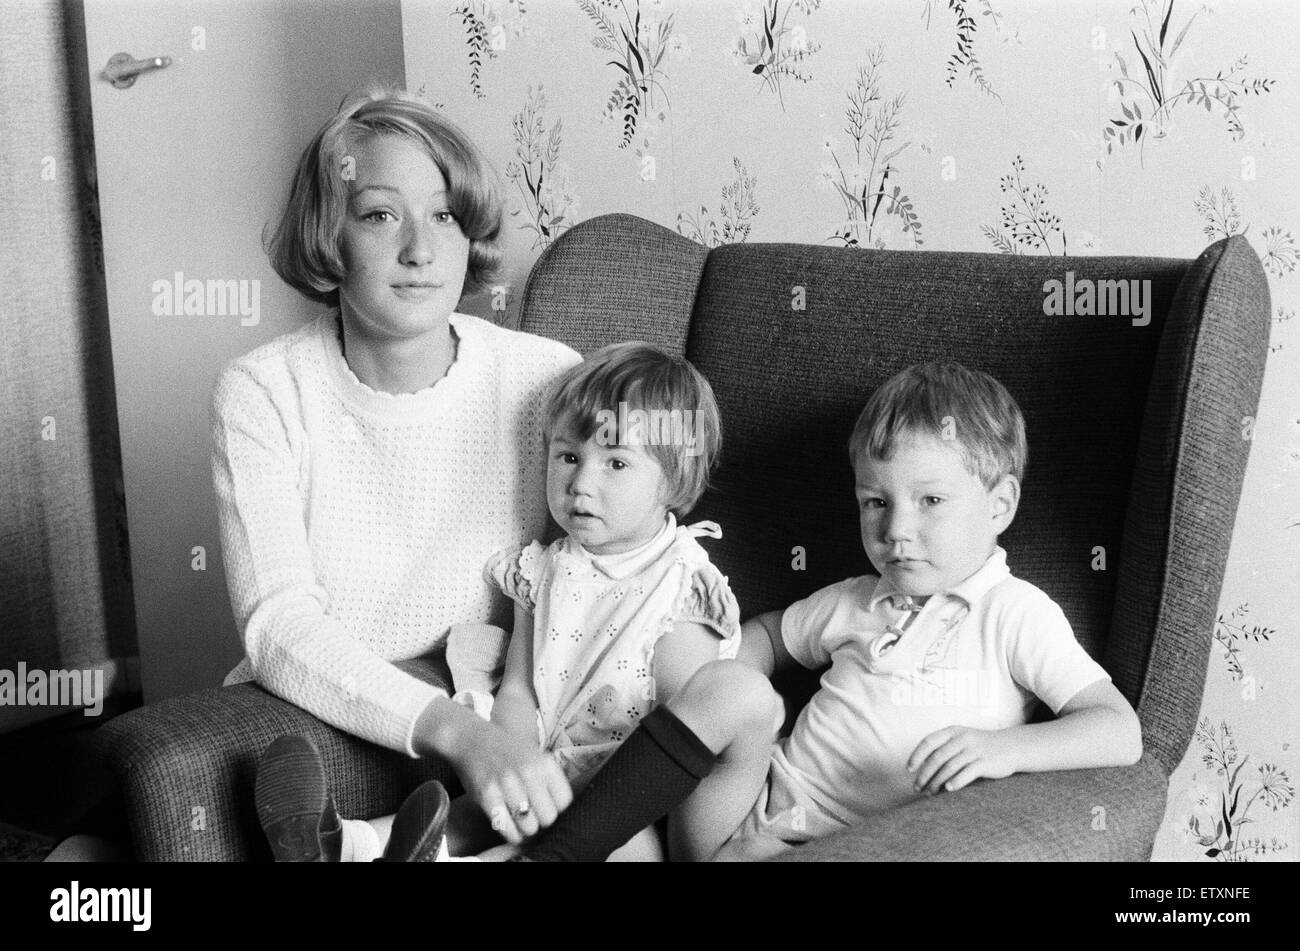 Mrs Gillian Wombwell, wife of murdered Detective Constable David Wombwell aged 25, pictured at home,  with children, - Stock Image